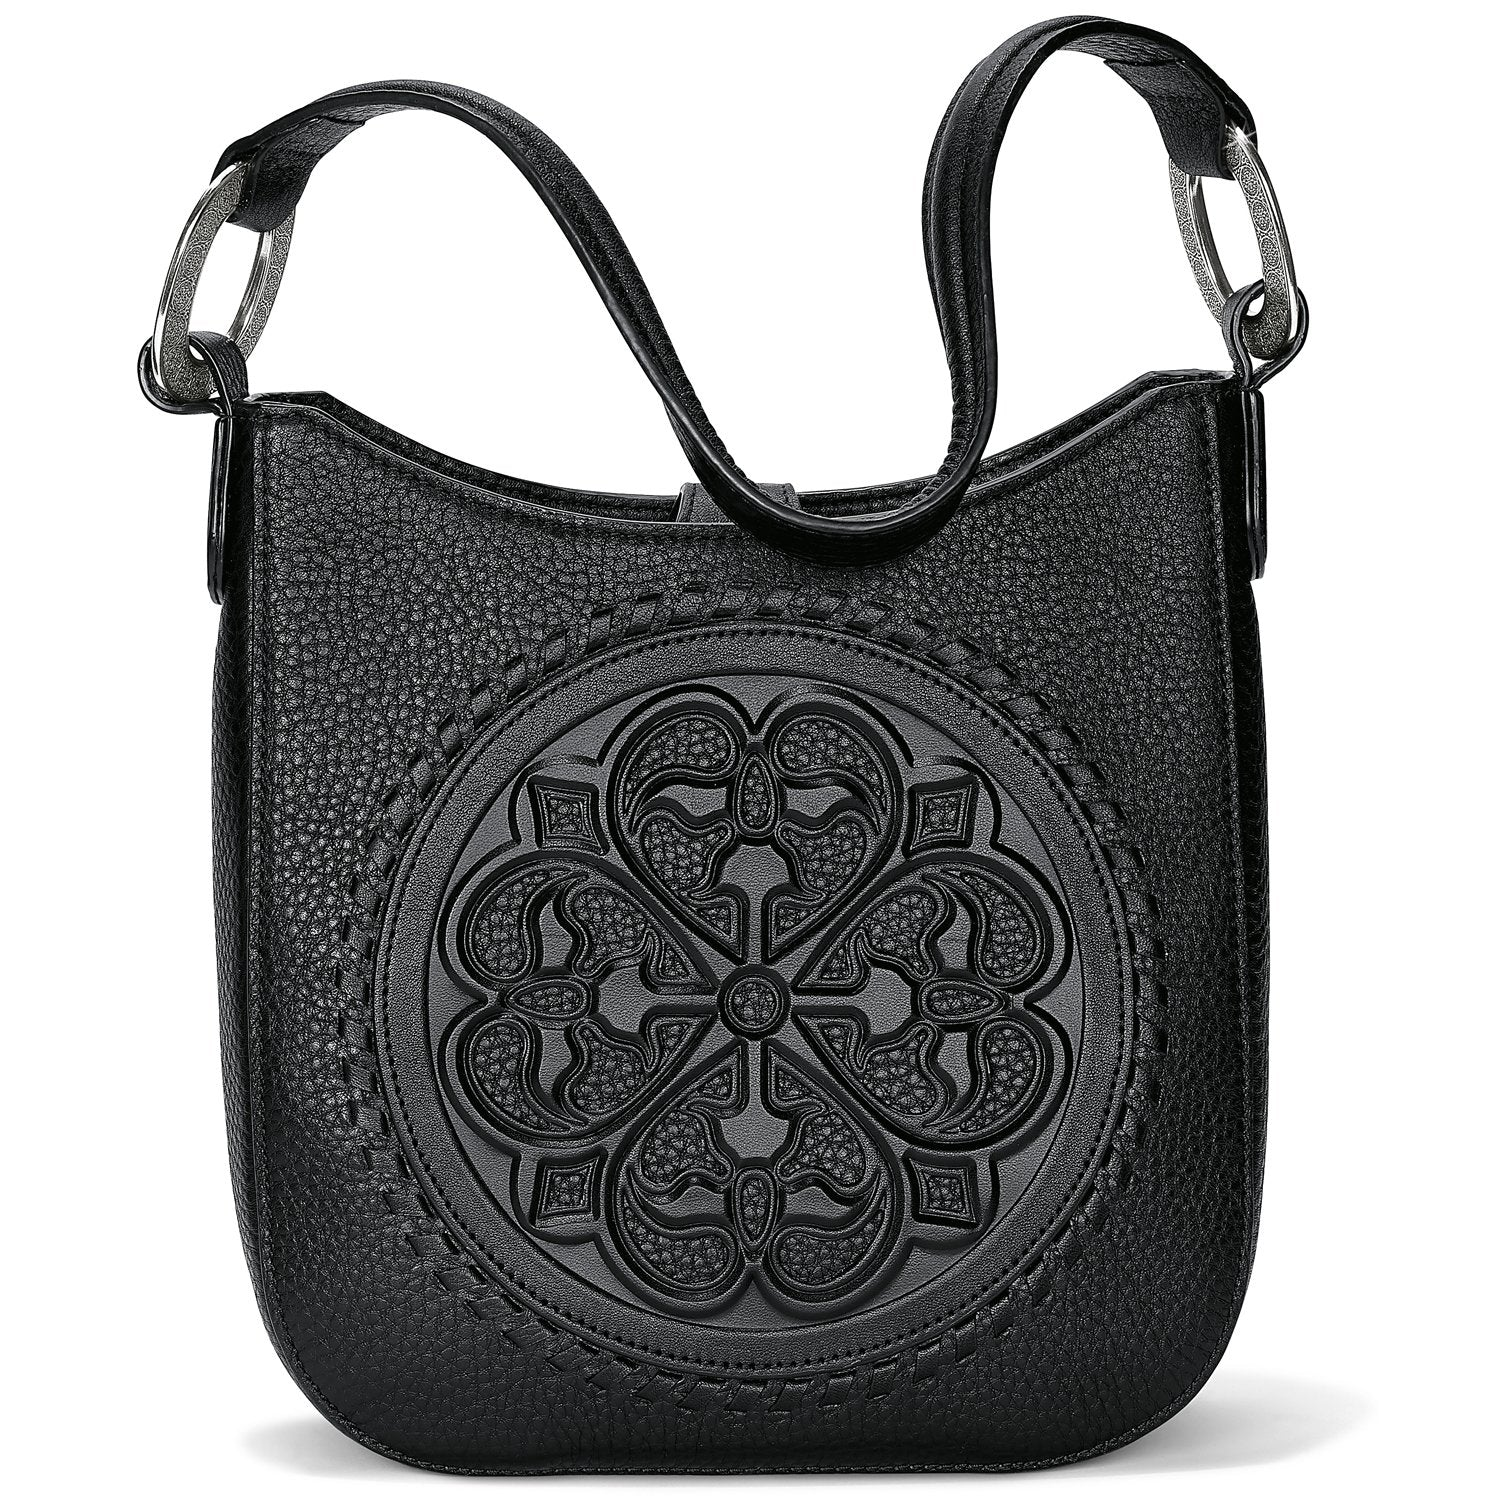 Ferrara Amelie Small Shoulderbag